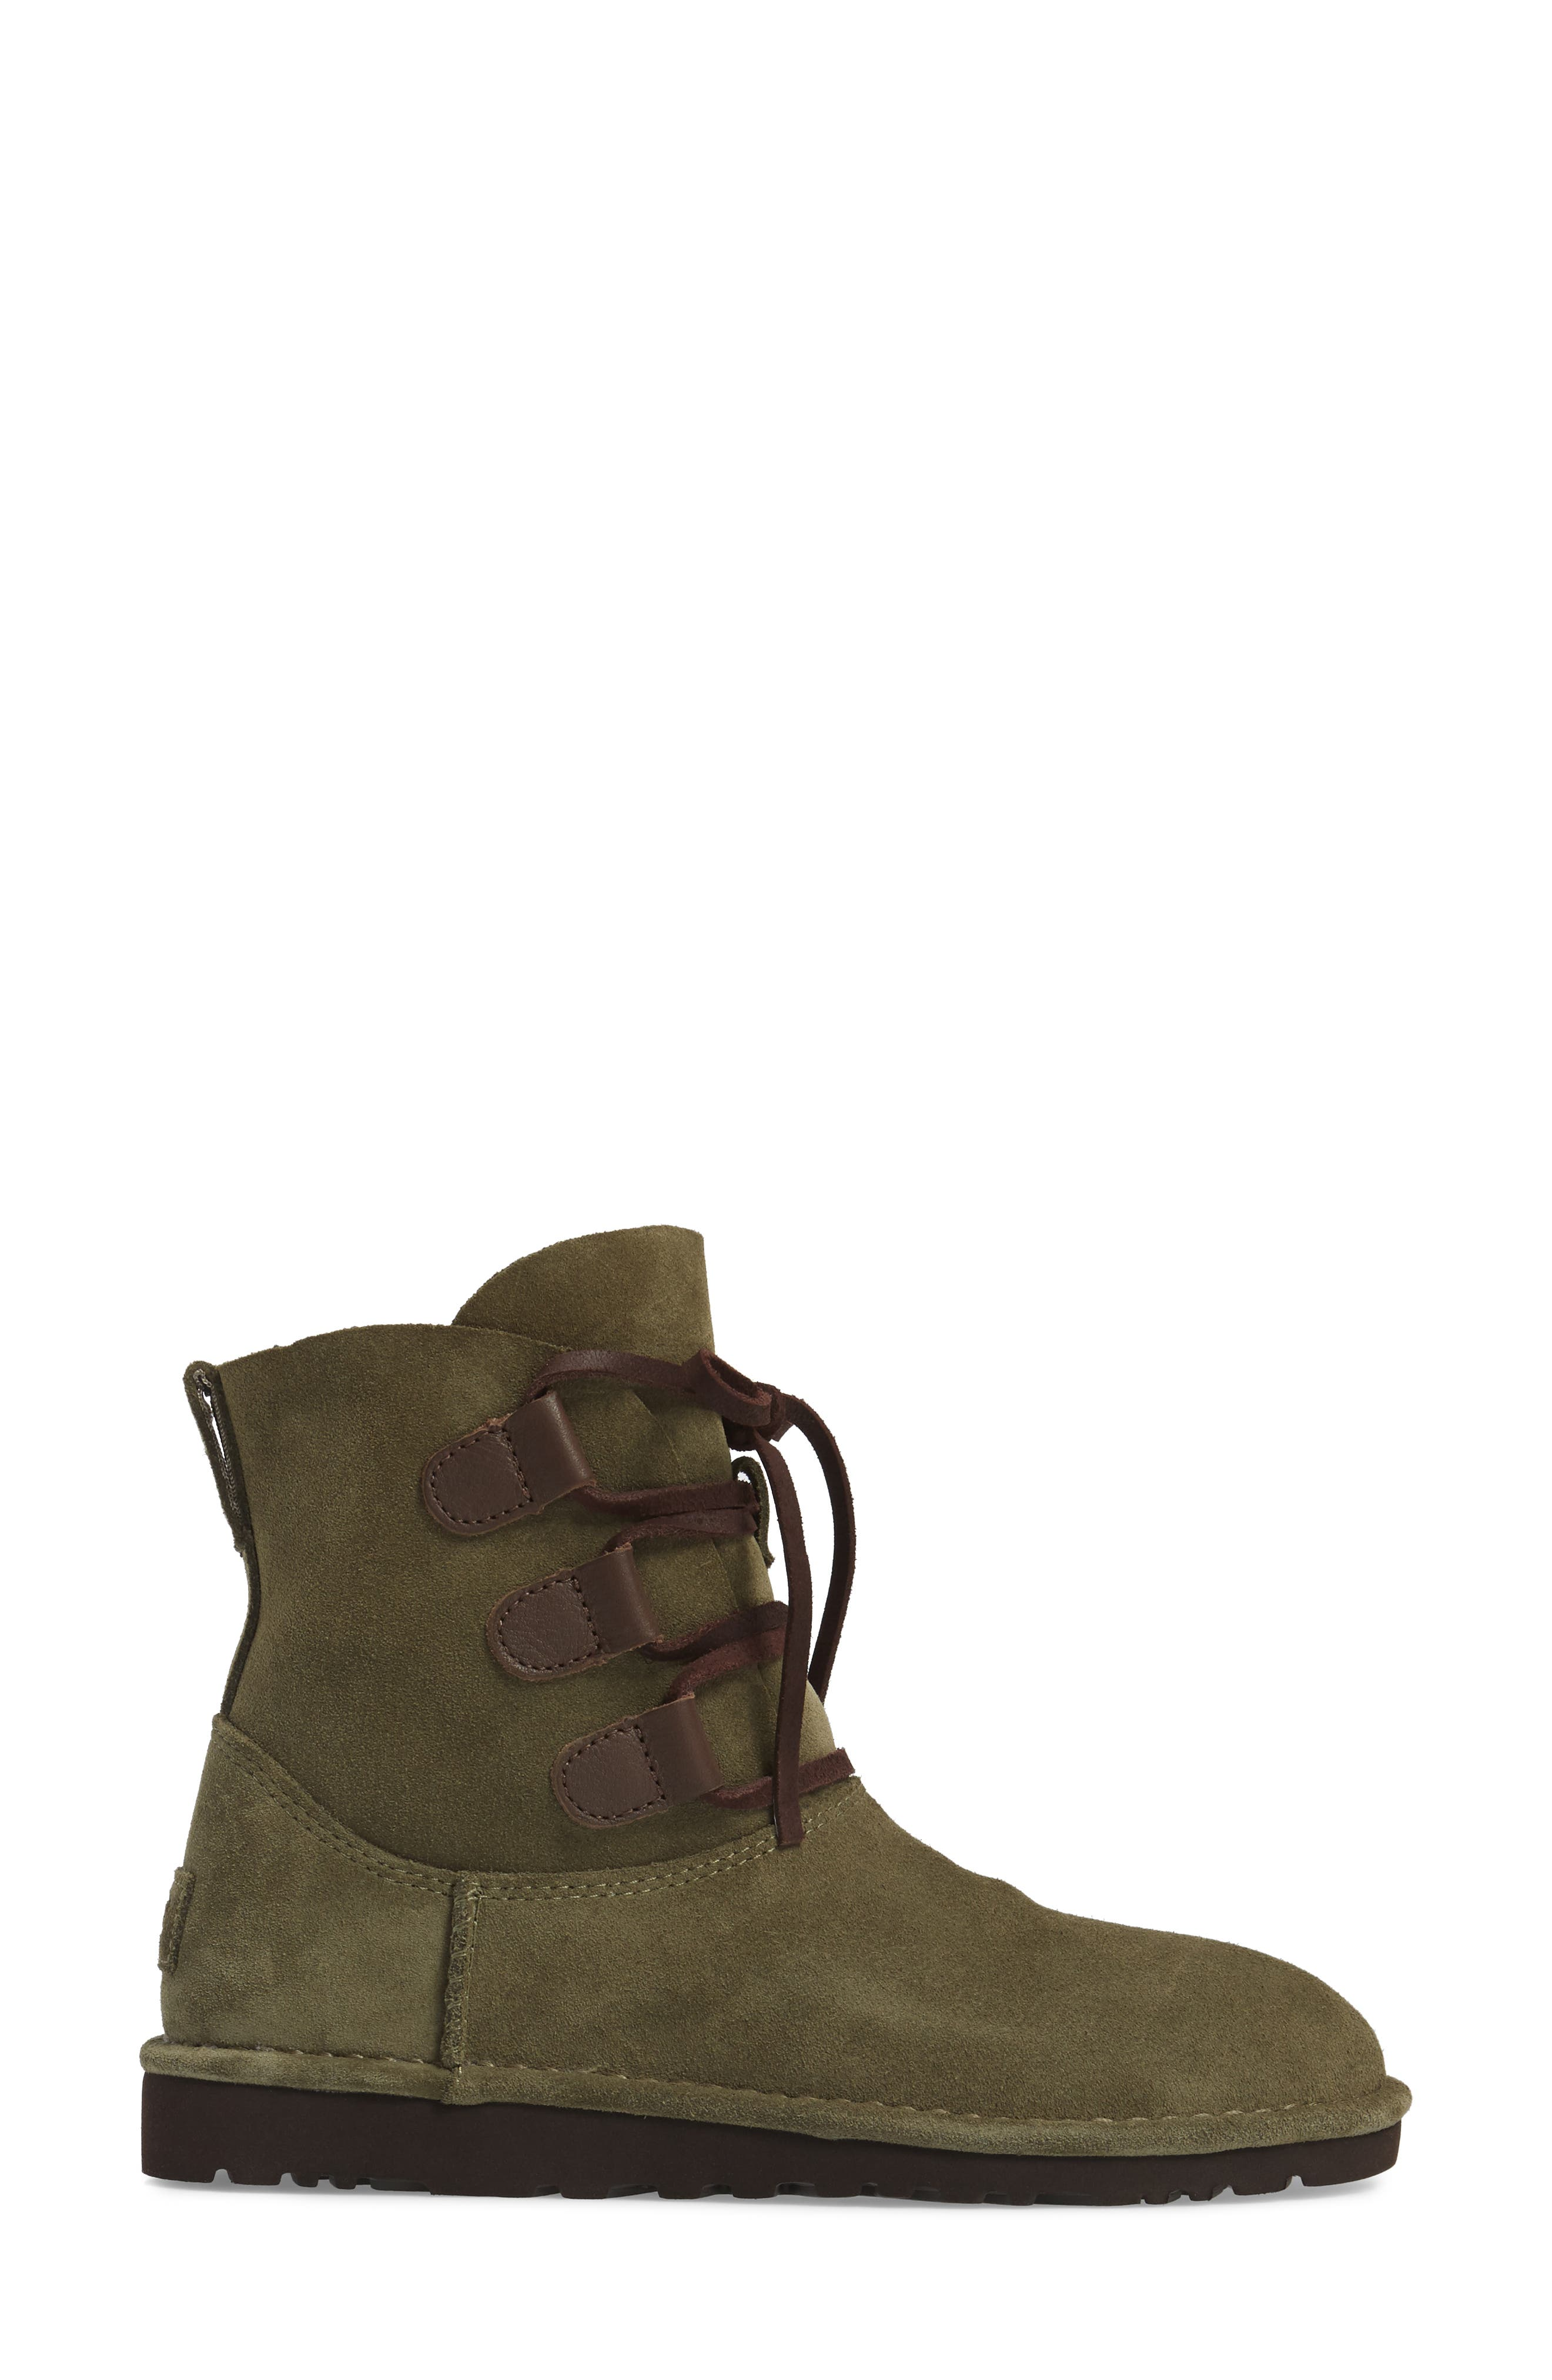 Elvi Short Boot,                             Alternate thumbnail 9, color,